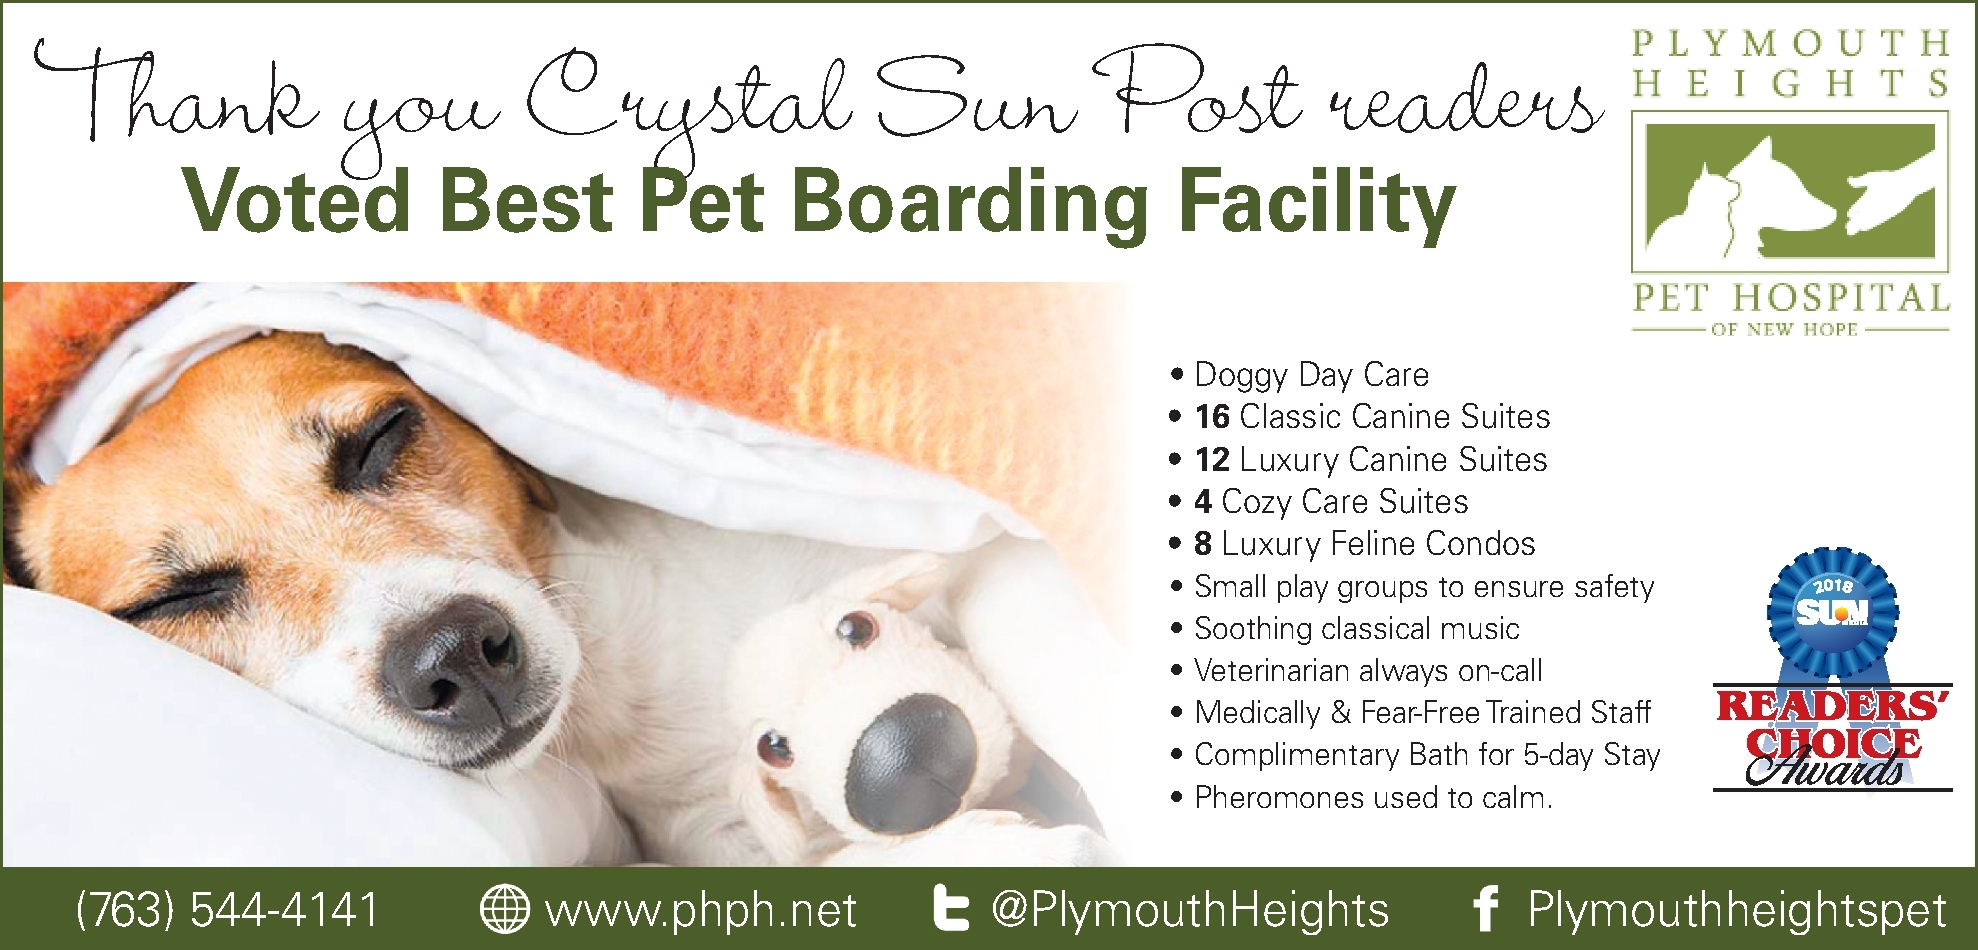 Thank you Crystal Sun Post readers. Plymouth Heights Pet Hospital of New Hope Voted Best Pet Boarding Facility.